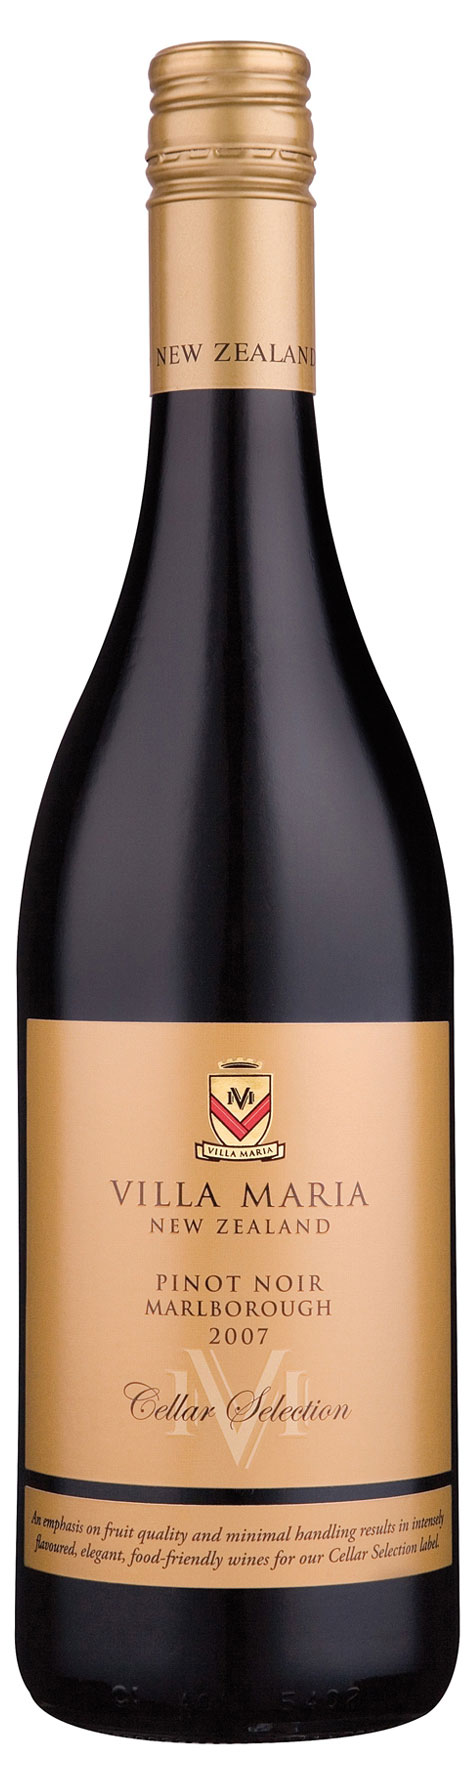 Villa Maria Cellar Selection Pinot Noir Marlborough 2015